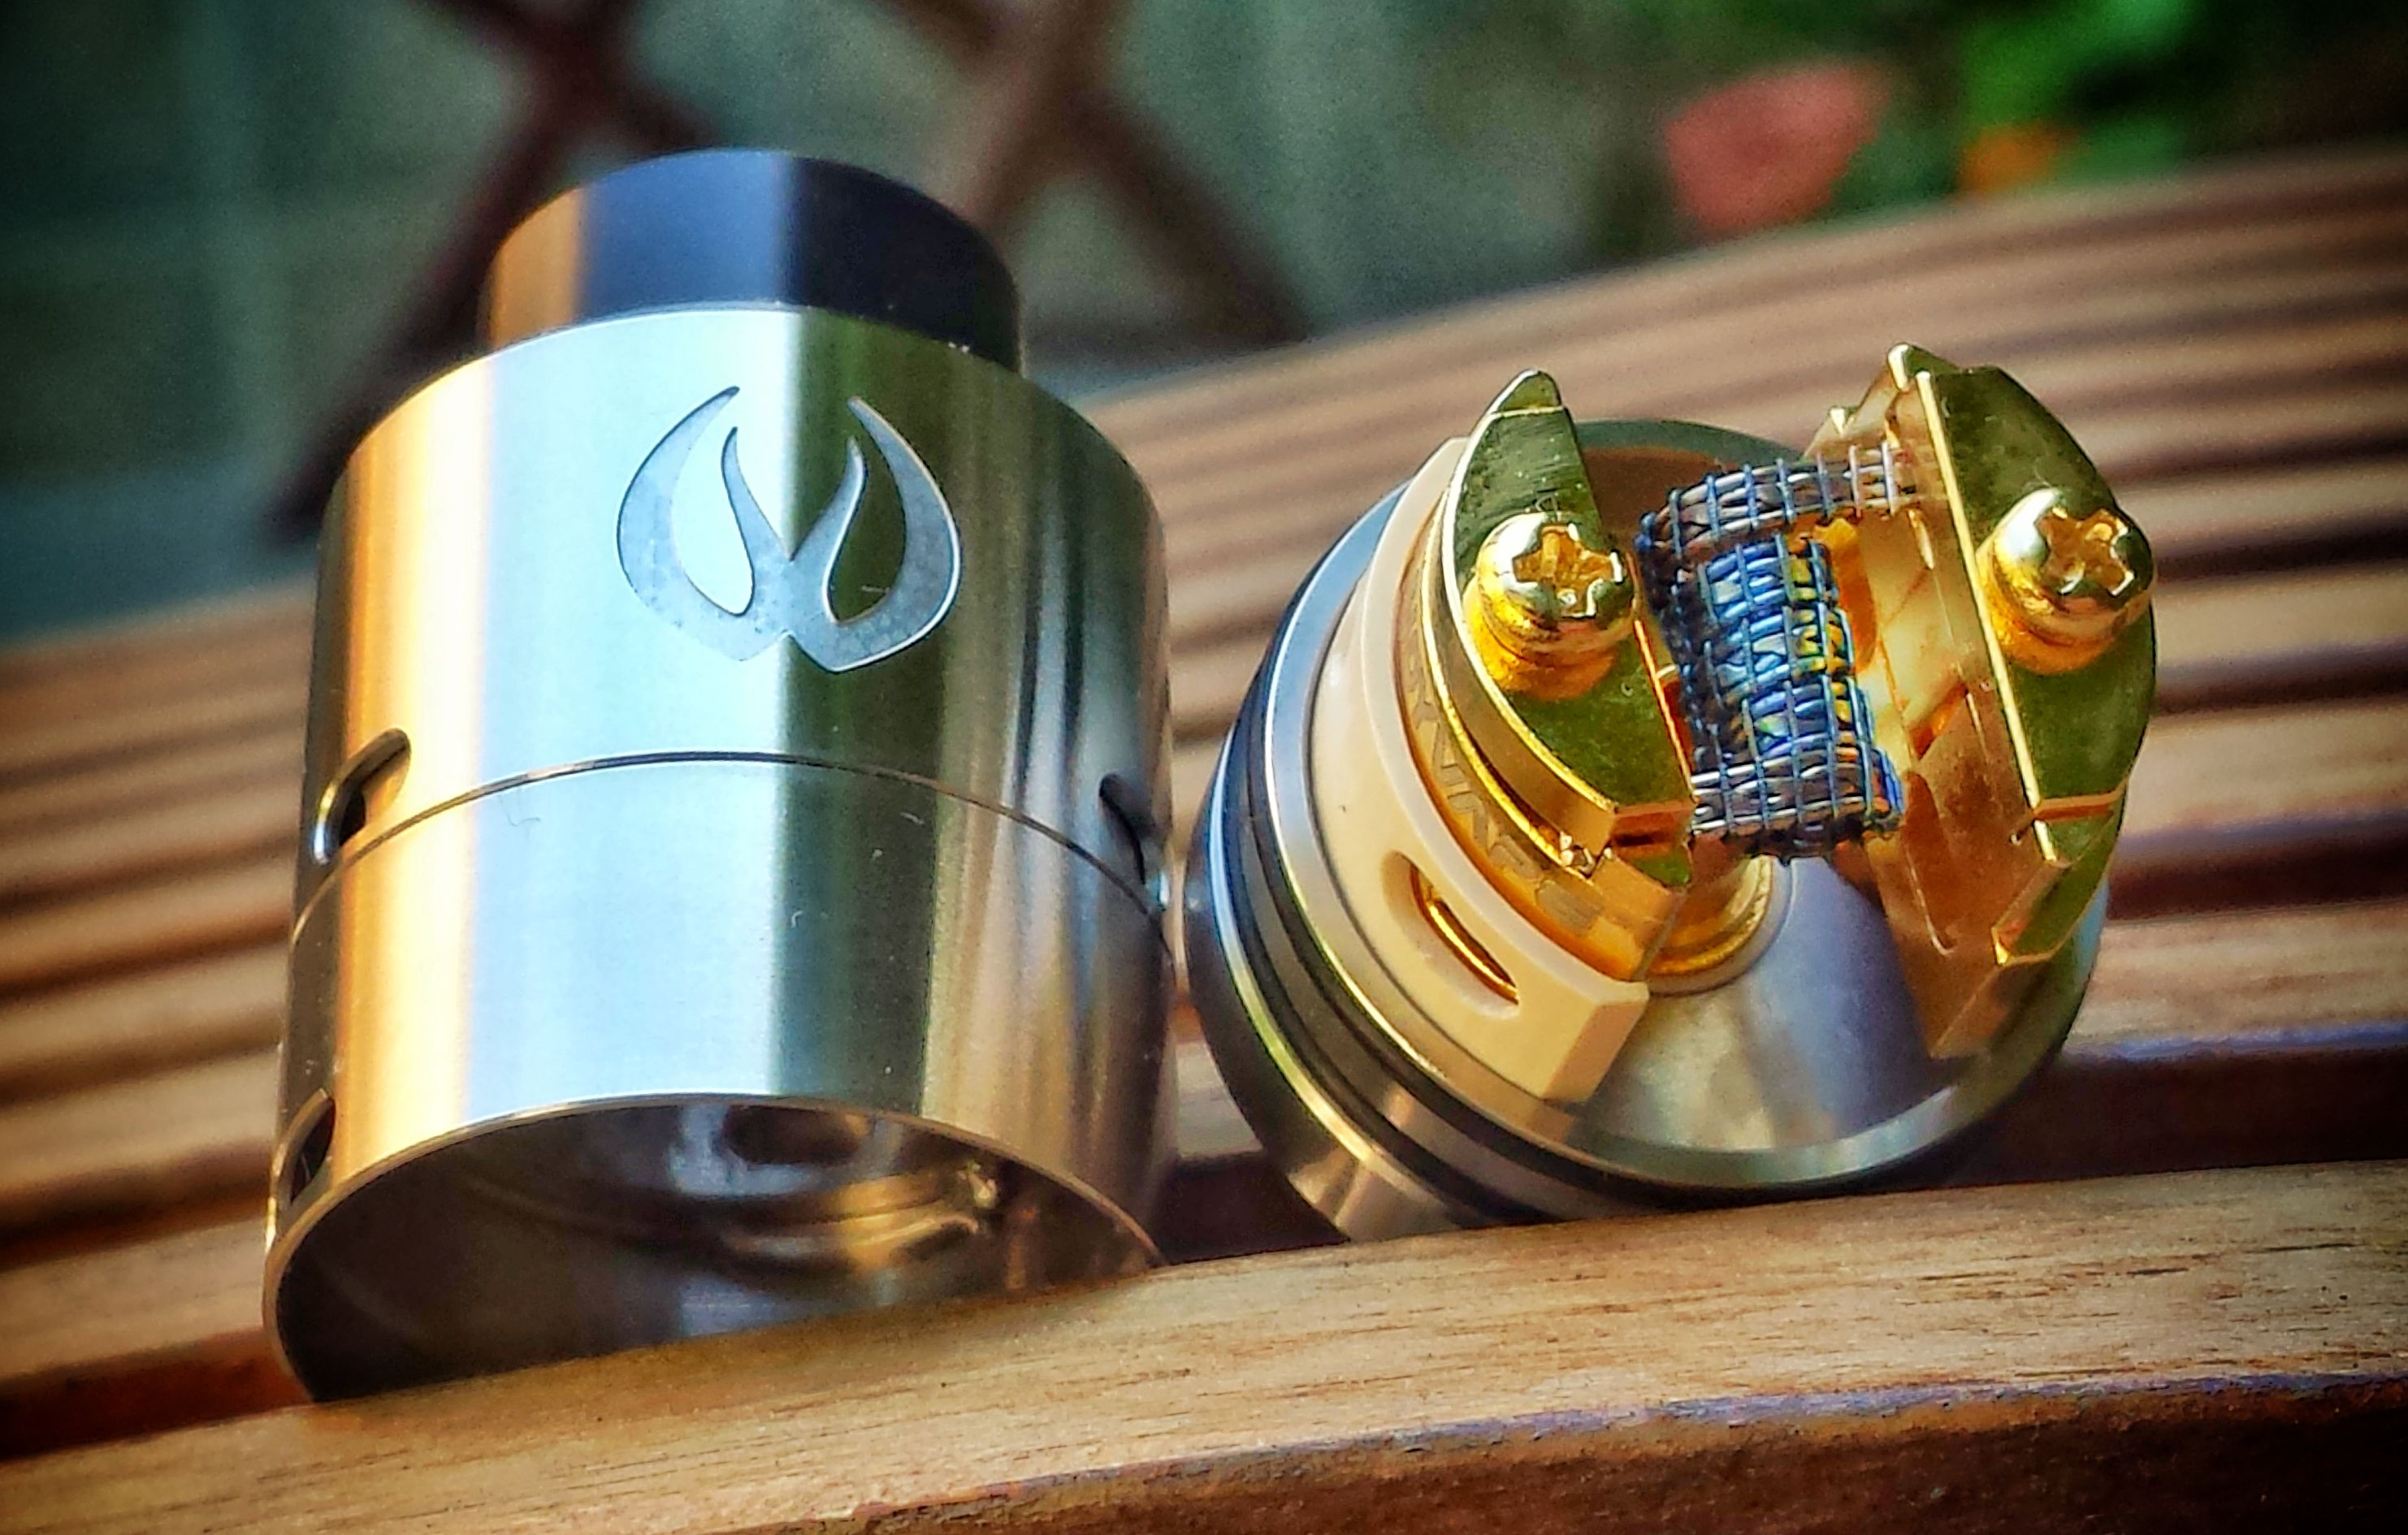 Beautiful single coil build on the Govad RDA 😍😍 Pic credit